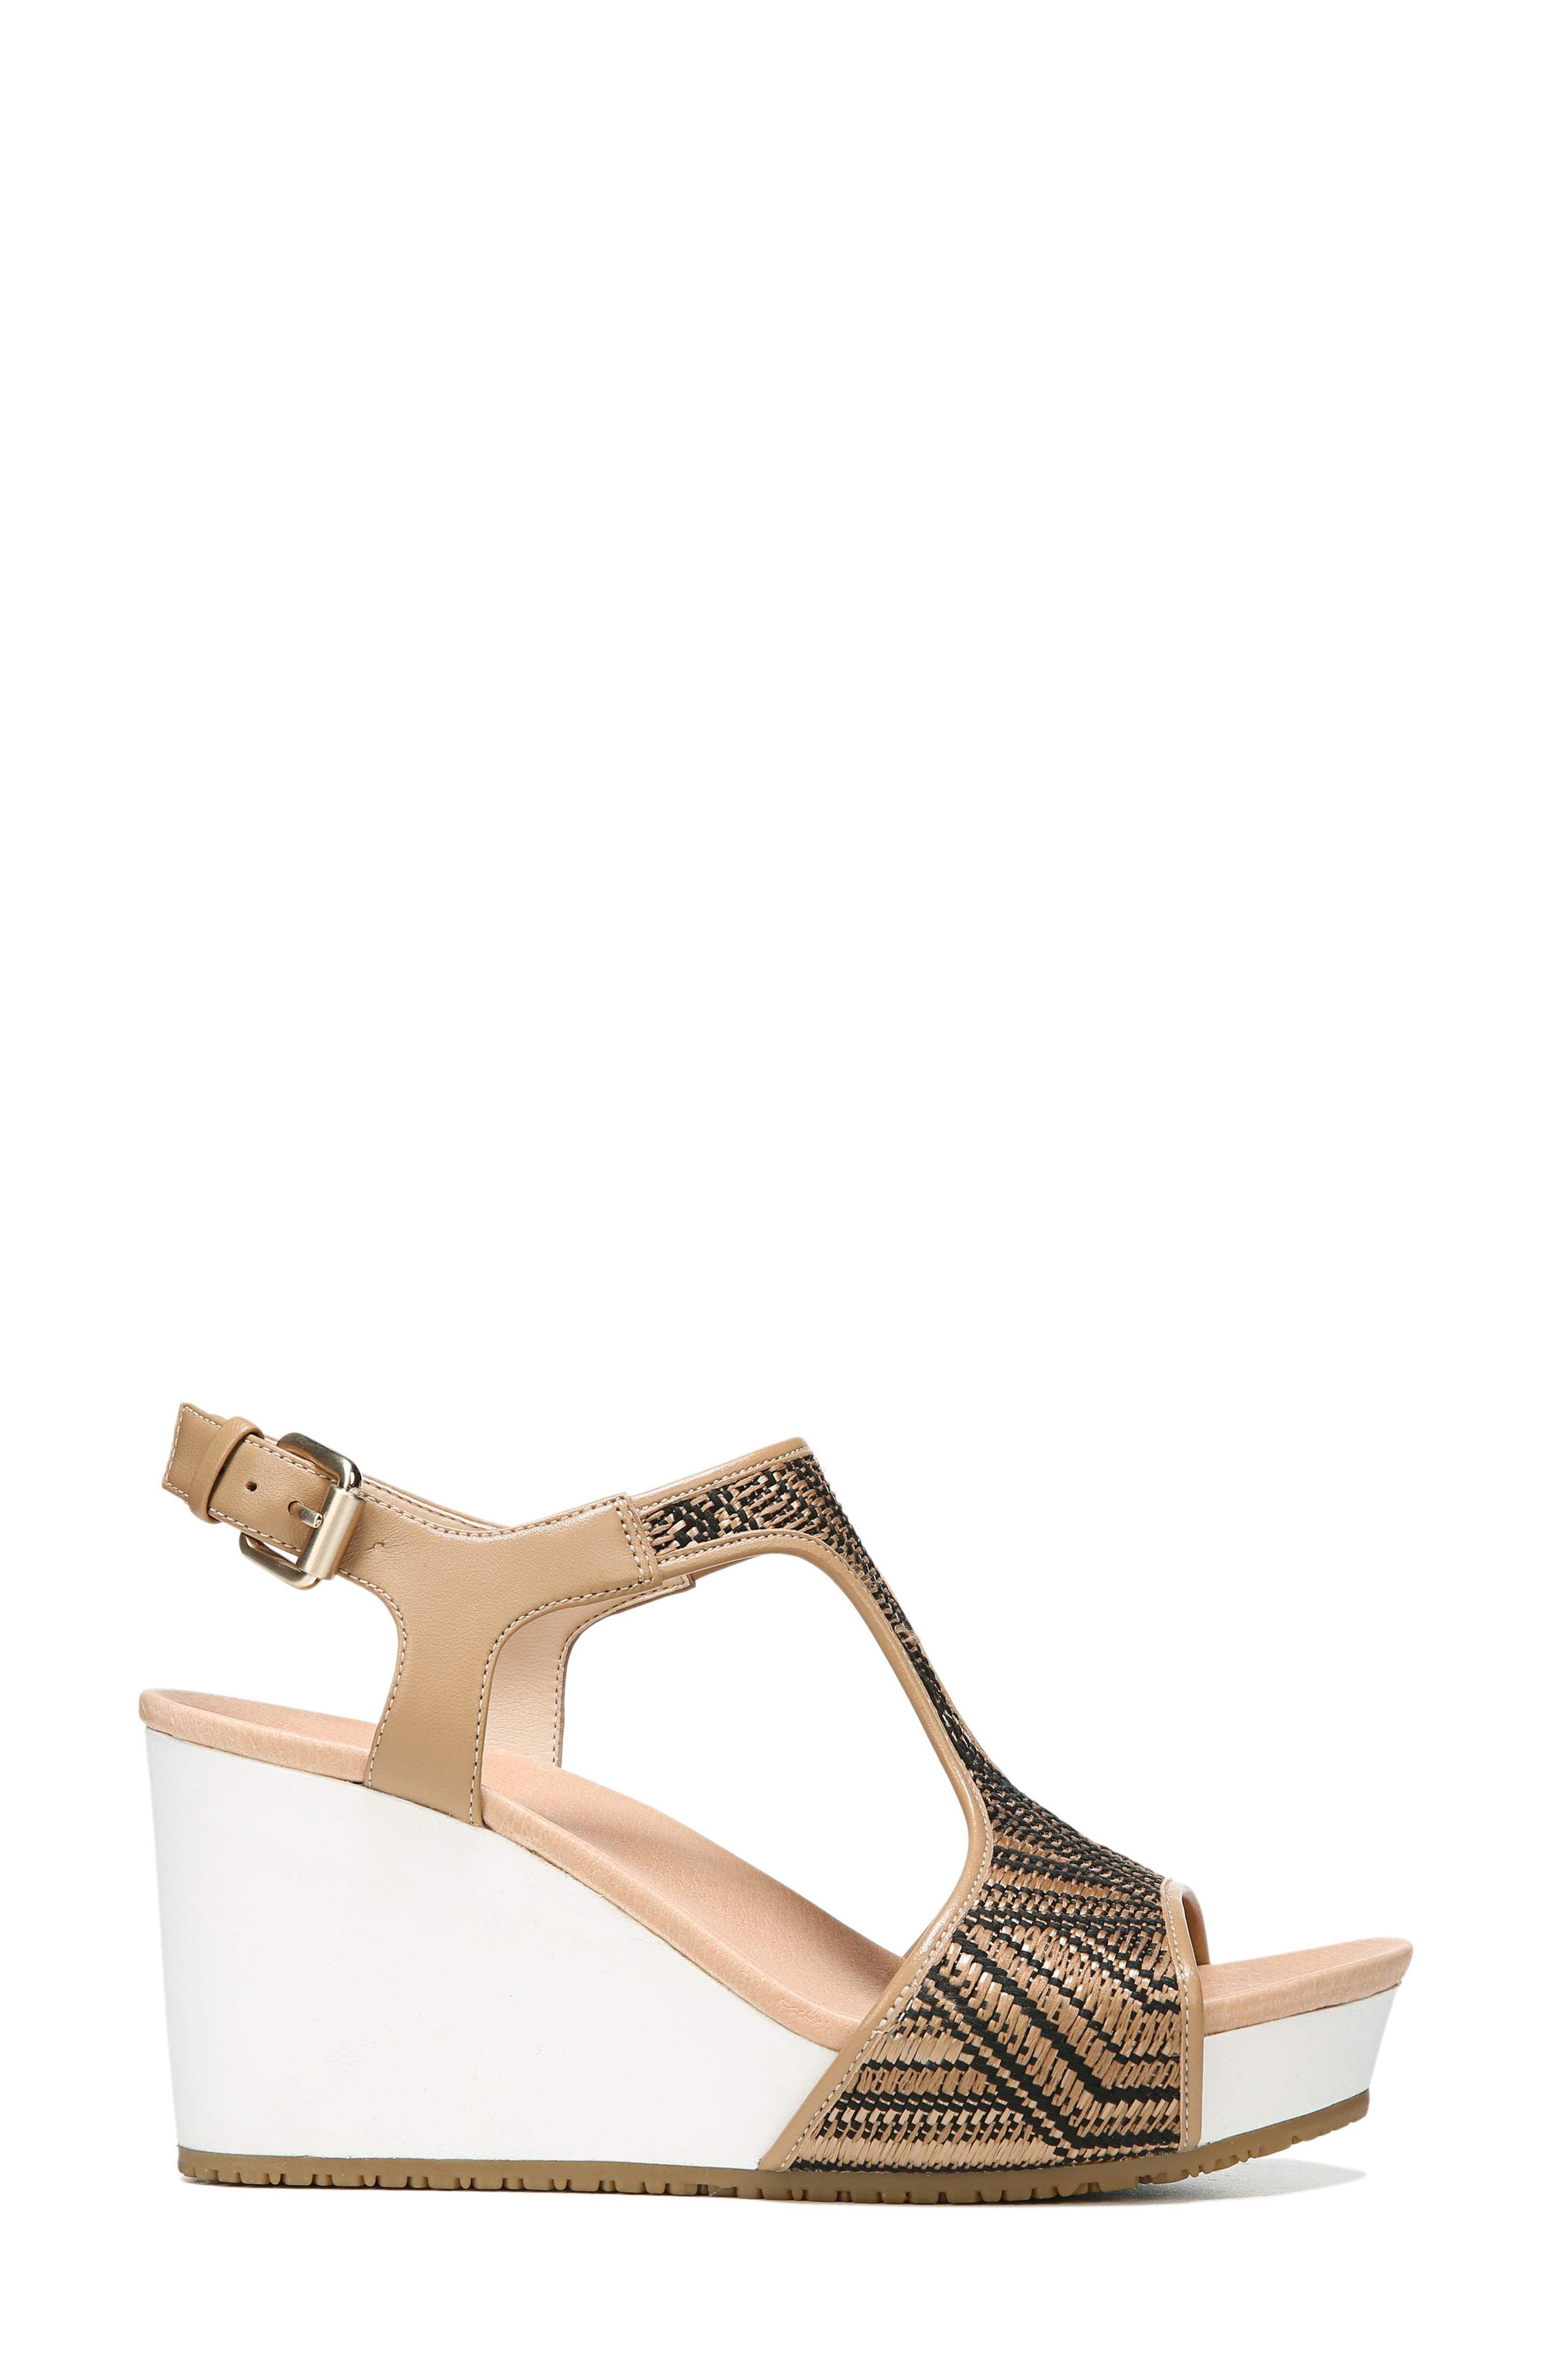 'Original Collection Wiley' Wedge Sandal,                             Alternate thumbnail 3, color,                             NUDE